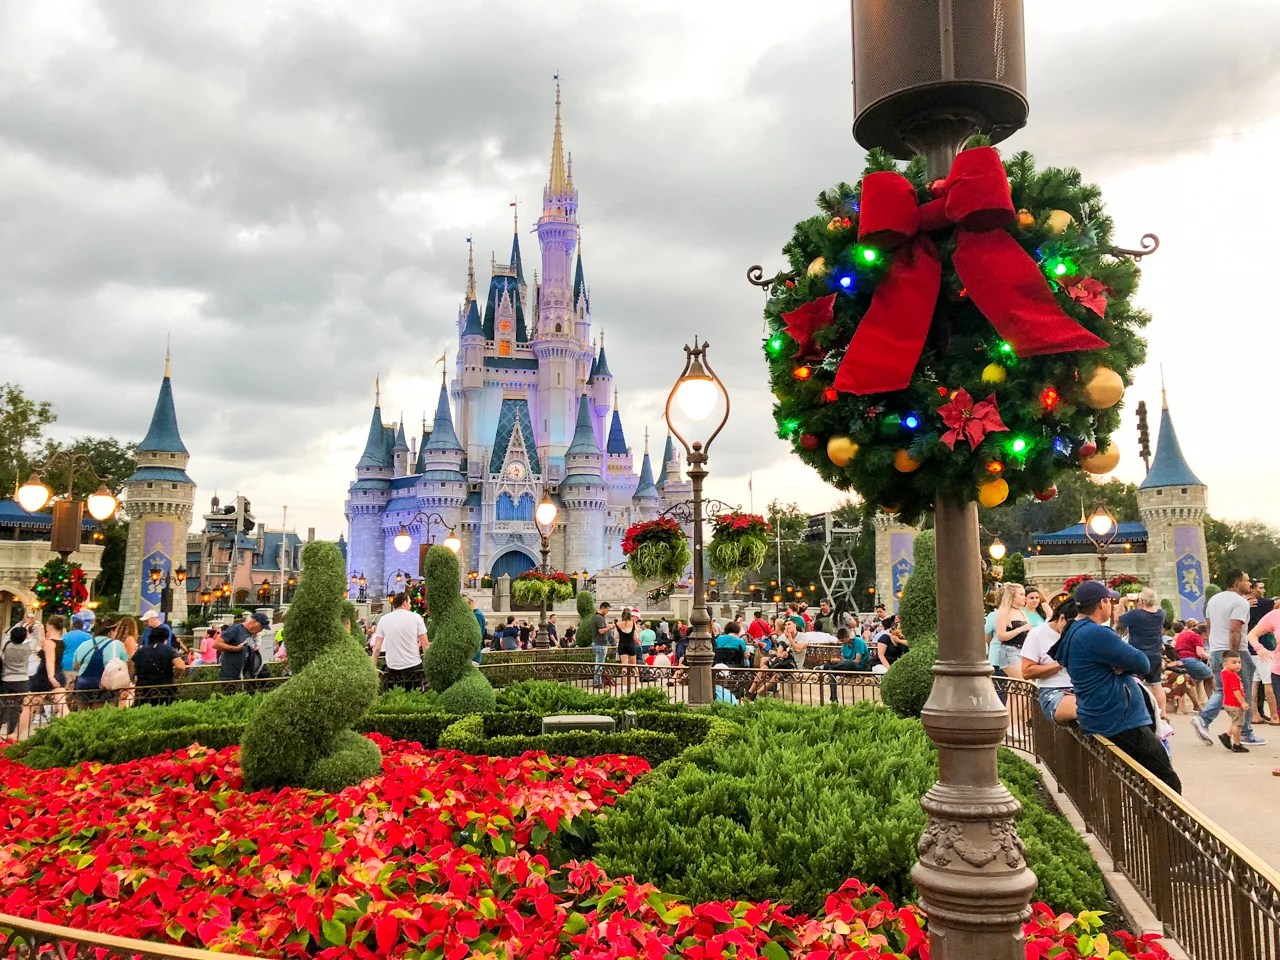 Disney World at Christmas: Peak Holiday Magic